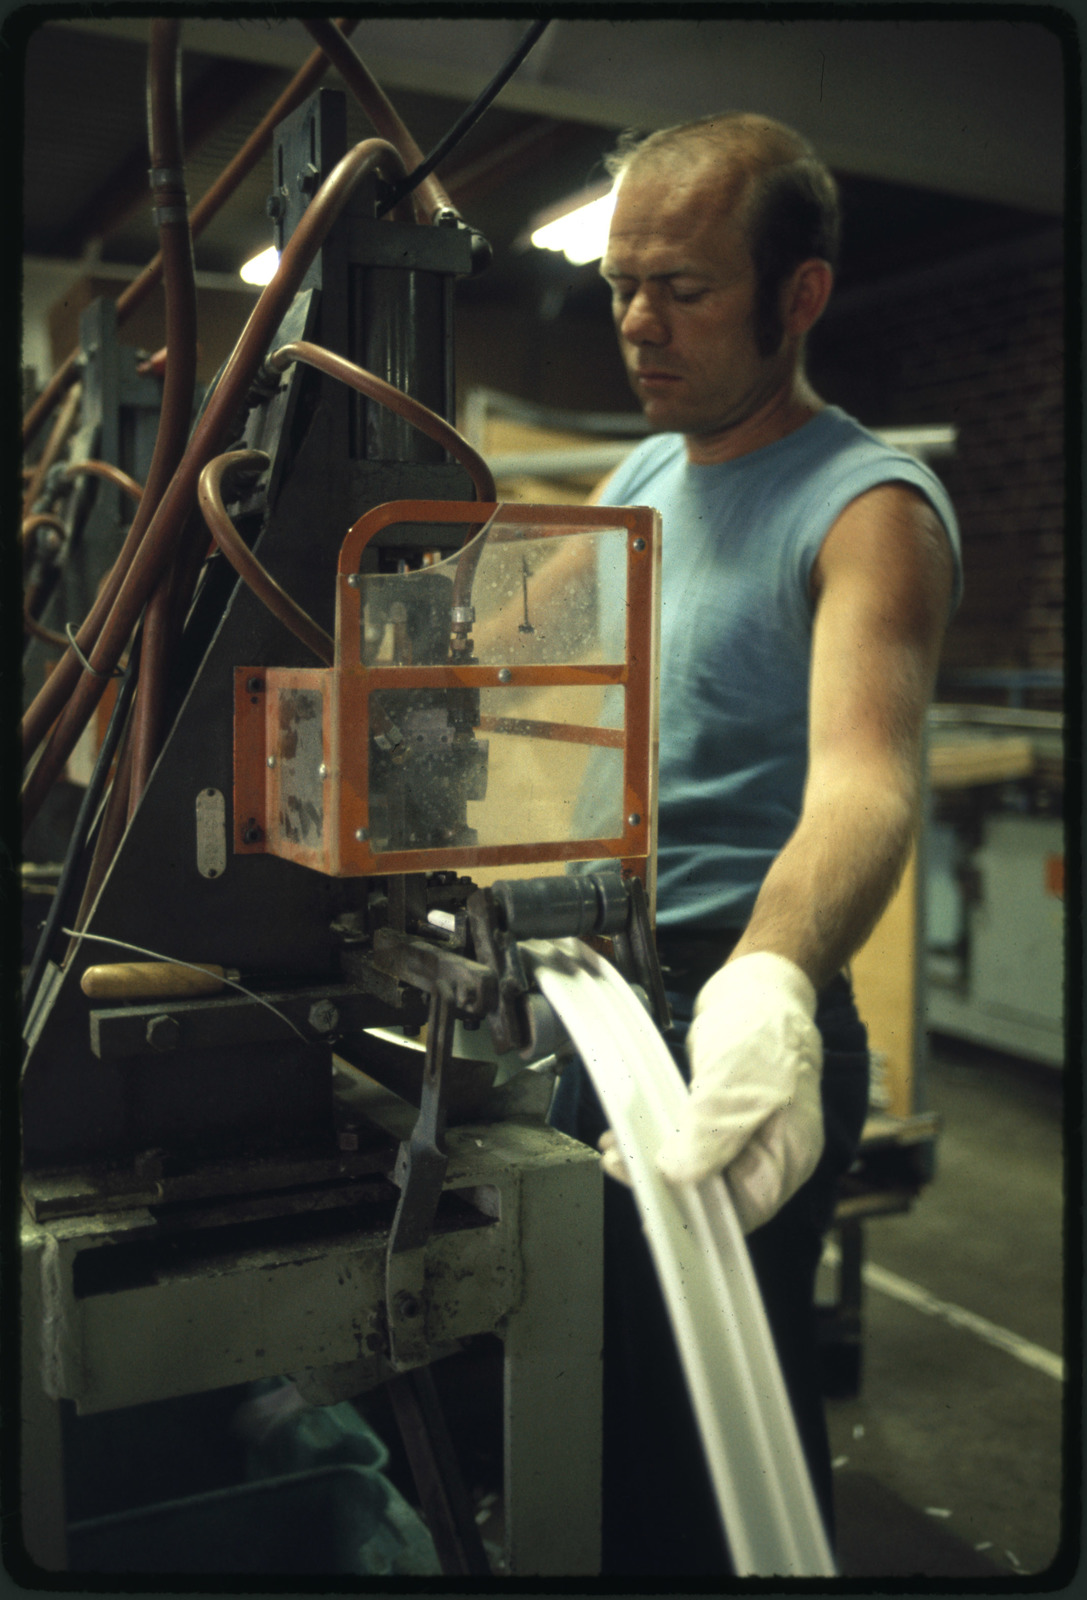 Employee of the B. F. Goodrich Co. Working on a Machine That Makes Molding for Magnetic Doors Seals for Various Brands of Refrigerators, the Firm Employs 184 People which Makes it the Third Largest Employer in Town Behind the 3m Co.(Minnesota Mining and Manufacturing) with 1,377 and Kraft Foods with 487, New Ulm is a Country Seat of 13,000 in a Farming Area of South Central Minnesota Founded in 1854 by a German Immigrant Land Company